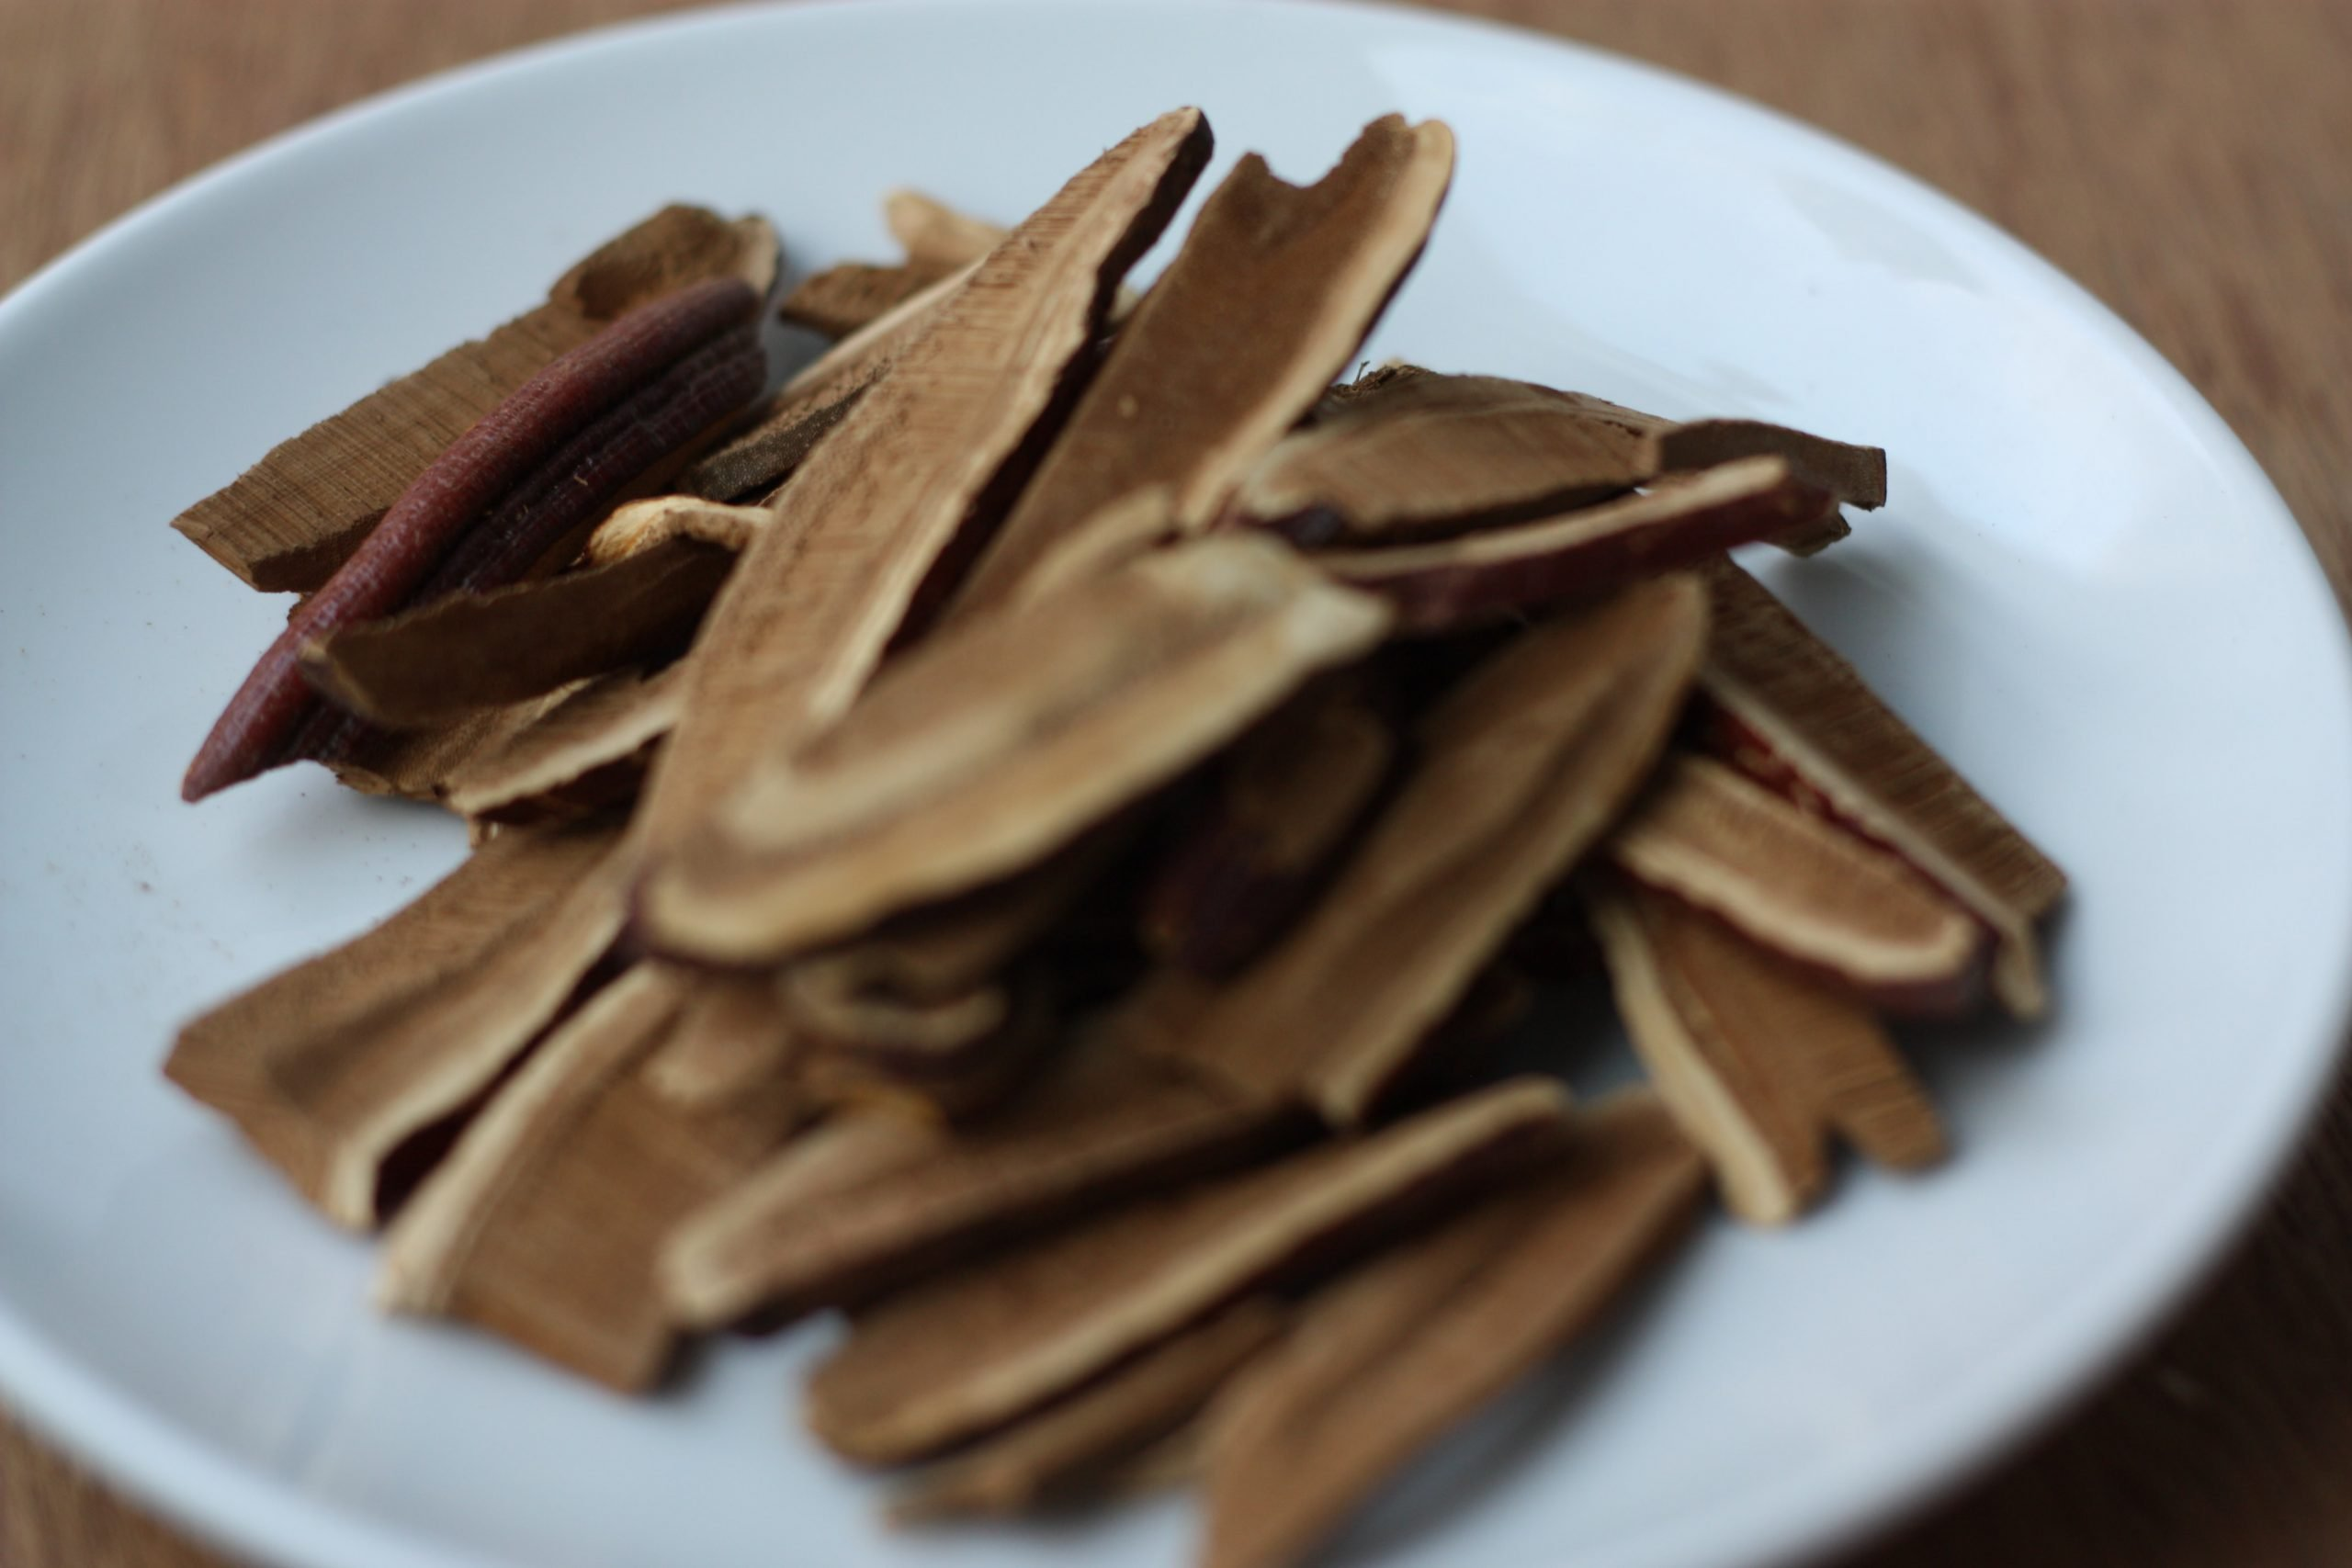 Sliced reishi has a variety of health benefits